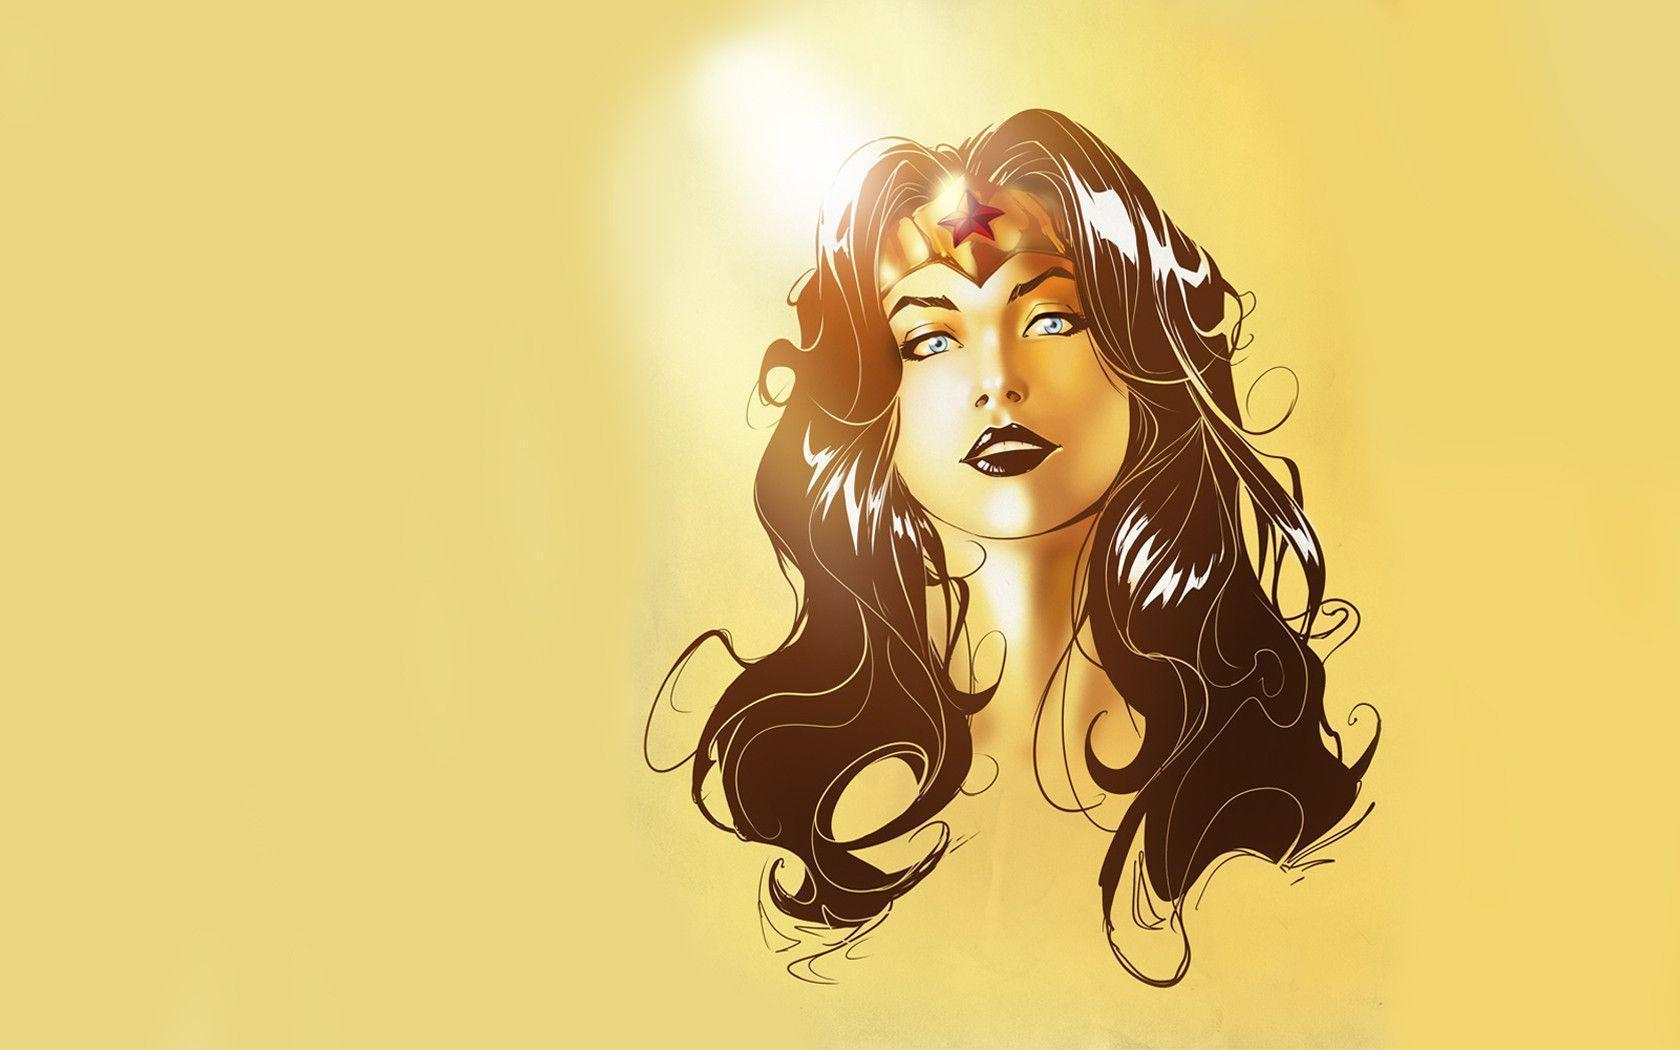 central wallpaper wonder woman - photo #13